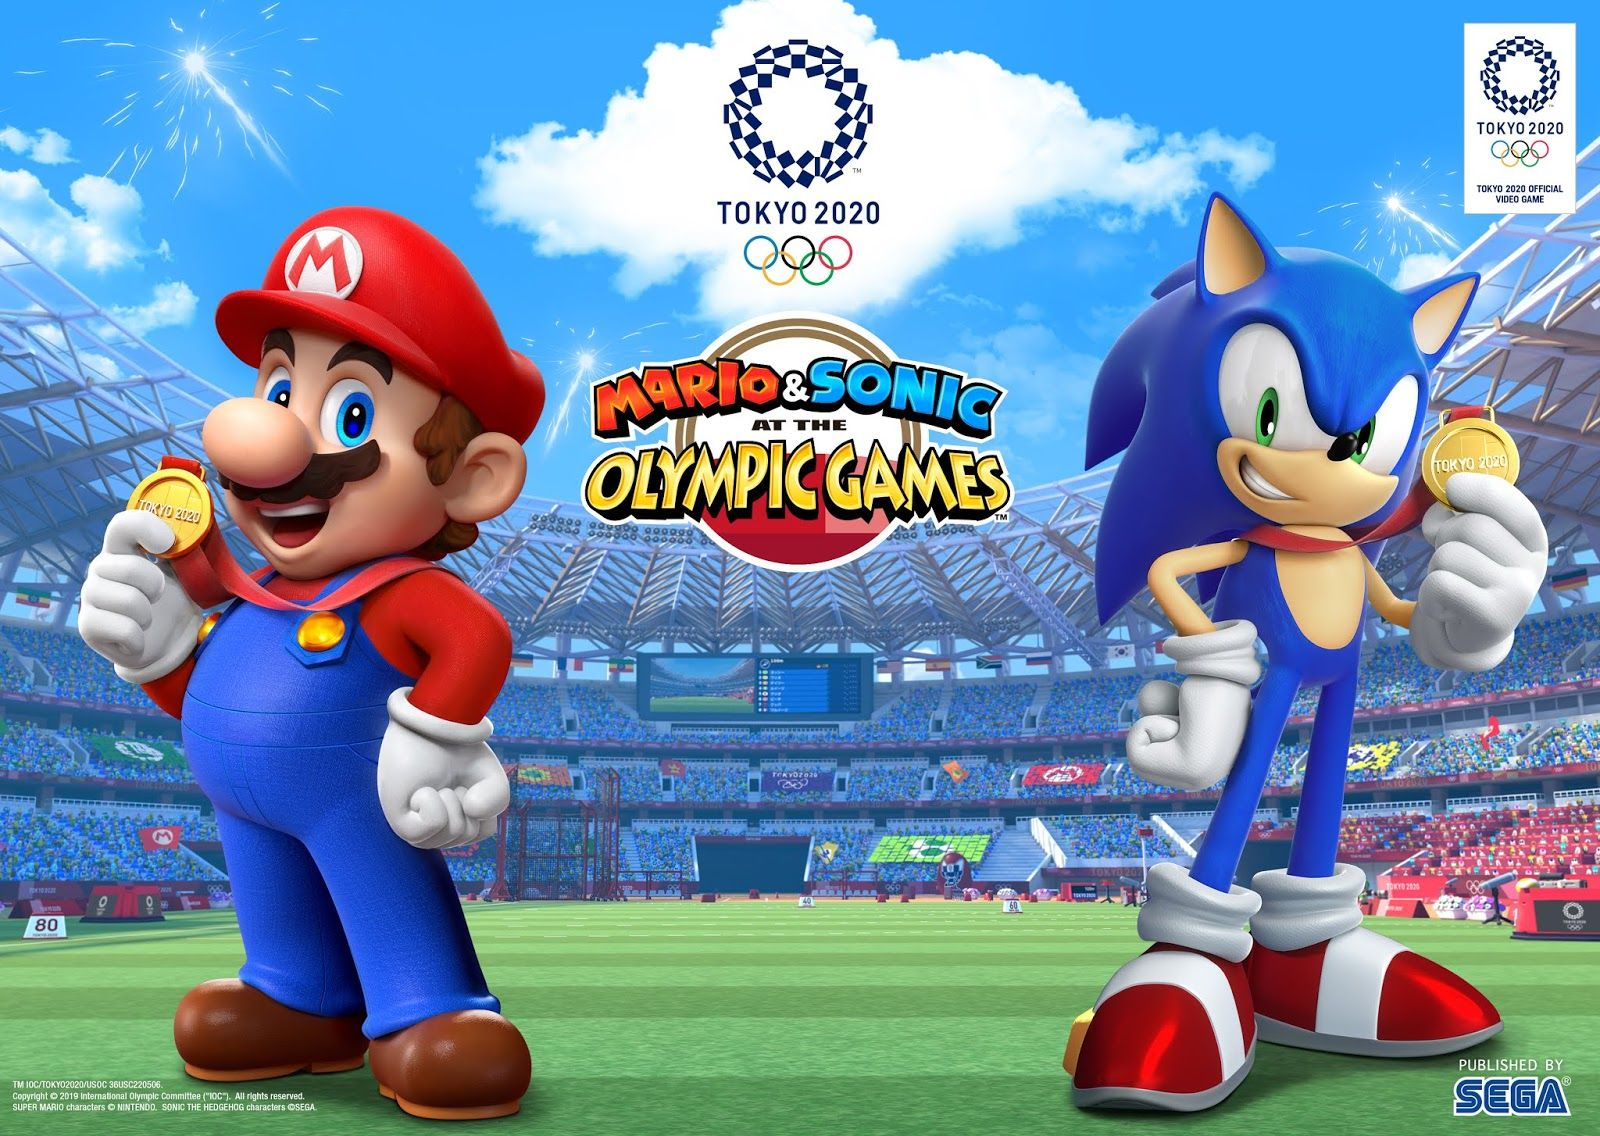 Give The Gift Of Gaming On Nintendo Switch Mario And Sonic At The Olympic Games Tokyo 2020 Tokyo 2020 Olympic Games Mario